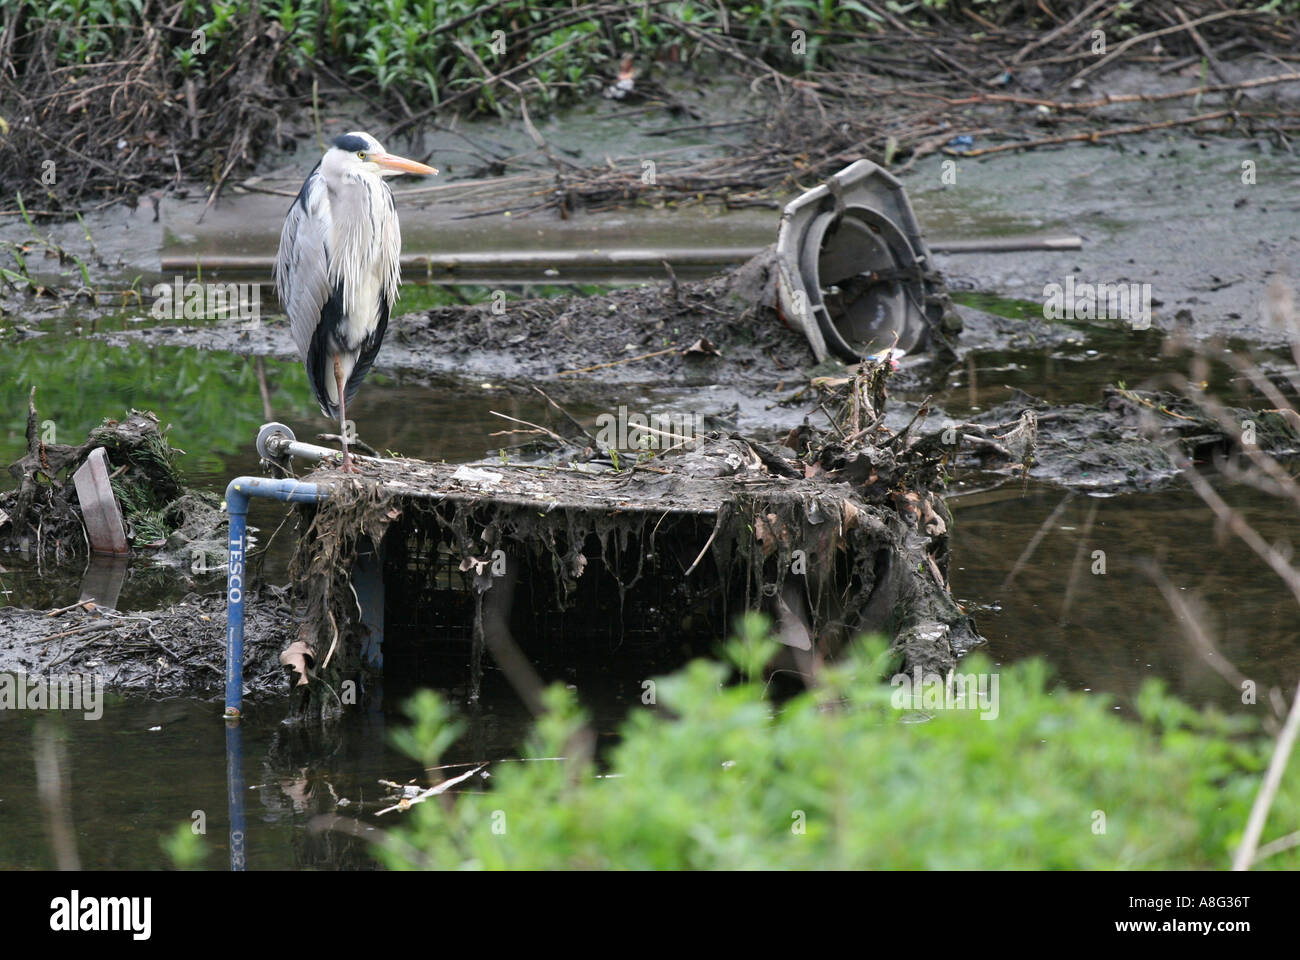 27 April 2006 Grey heron on supermarket trolley in Ravensbourne River a tributary of the Thames Lewisham London - Stock Image